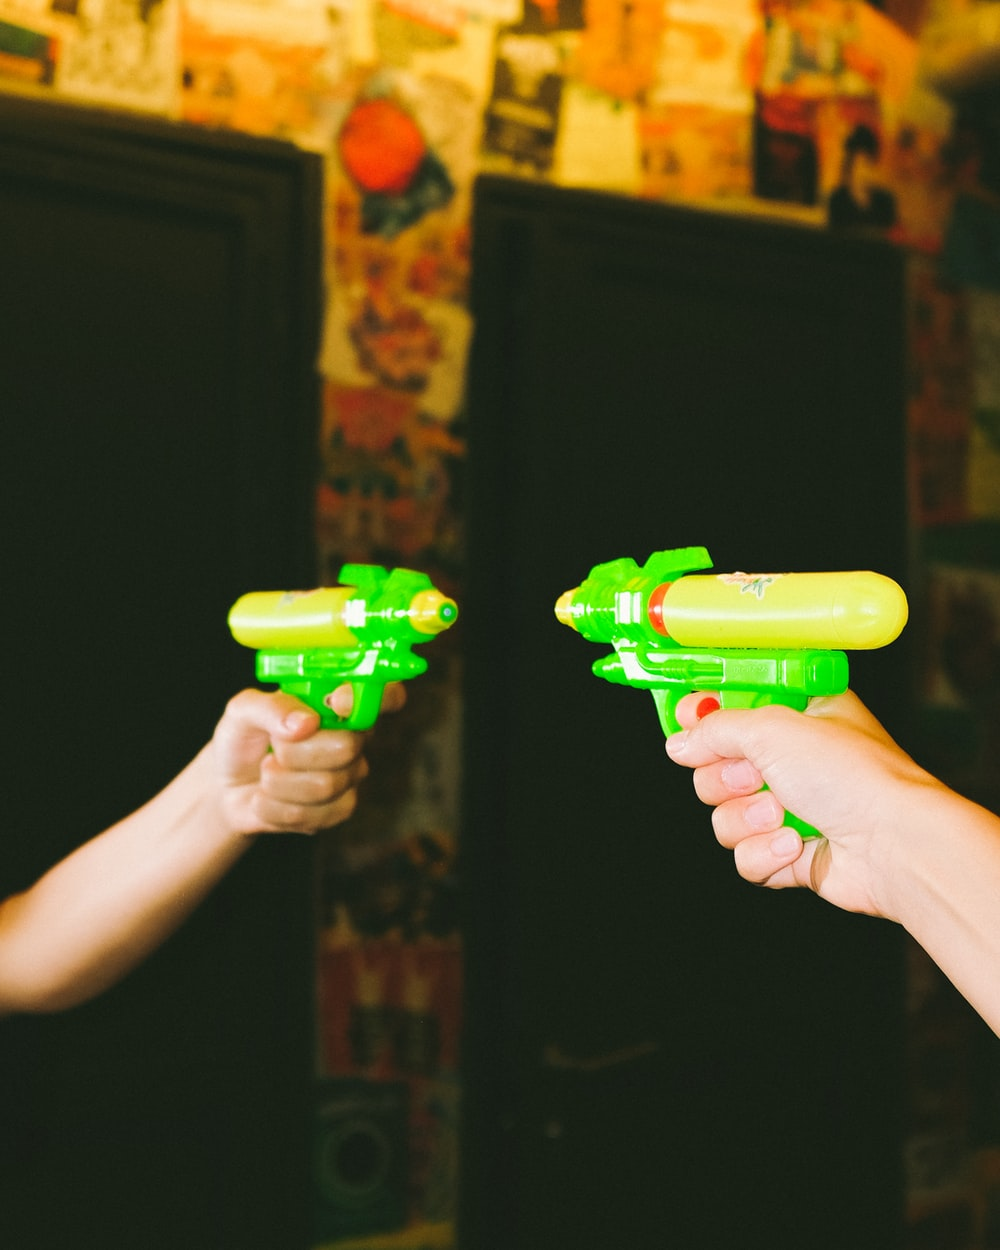 person holding green plastic toy